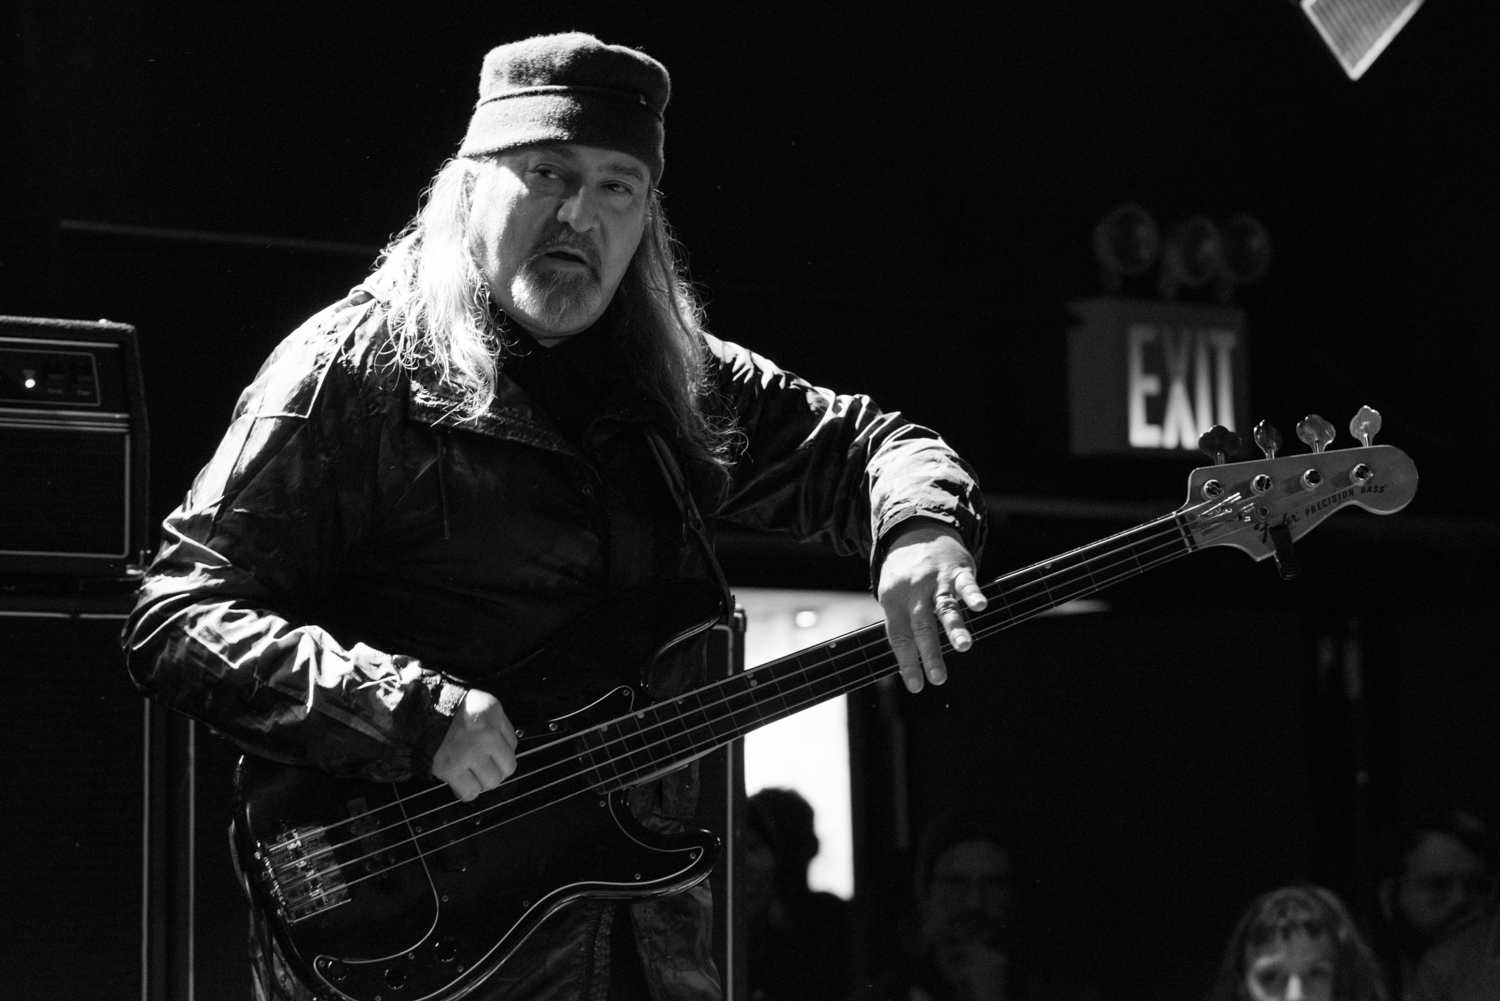 Bill Laswell on electric bass, performing at (Le) Poisson Rouge on Wednesday night, January 13.